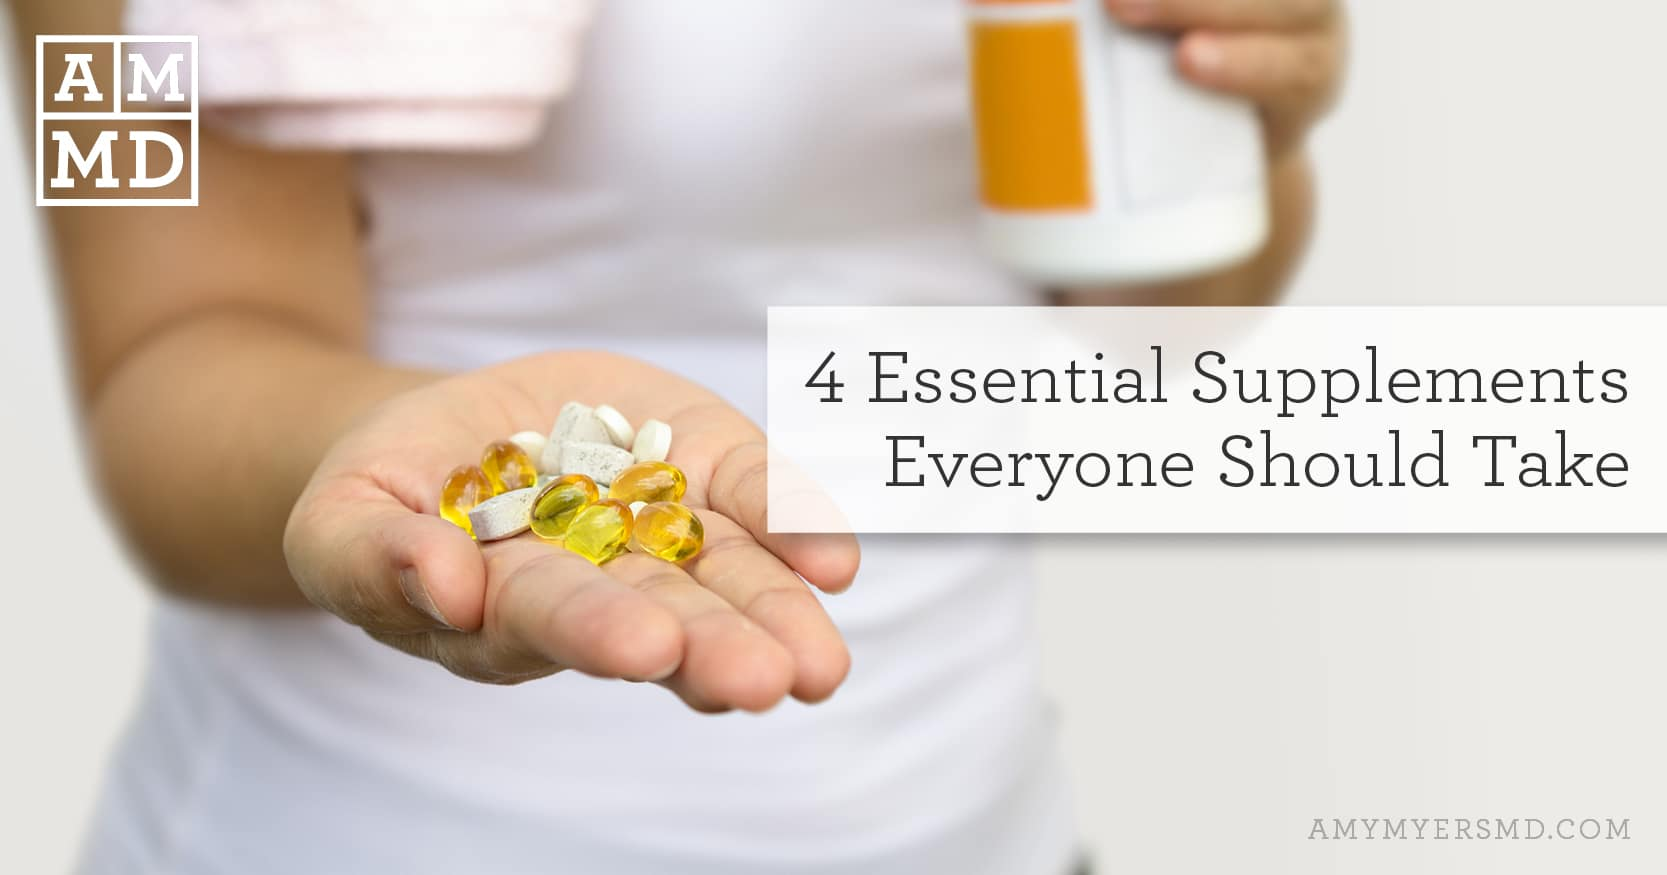 4 Essential Supplements Everyone Should Take - Featured Image - Amy Myers MD